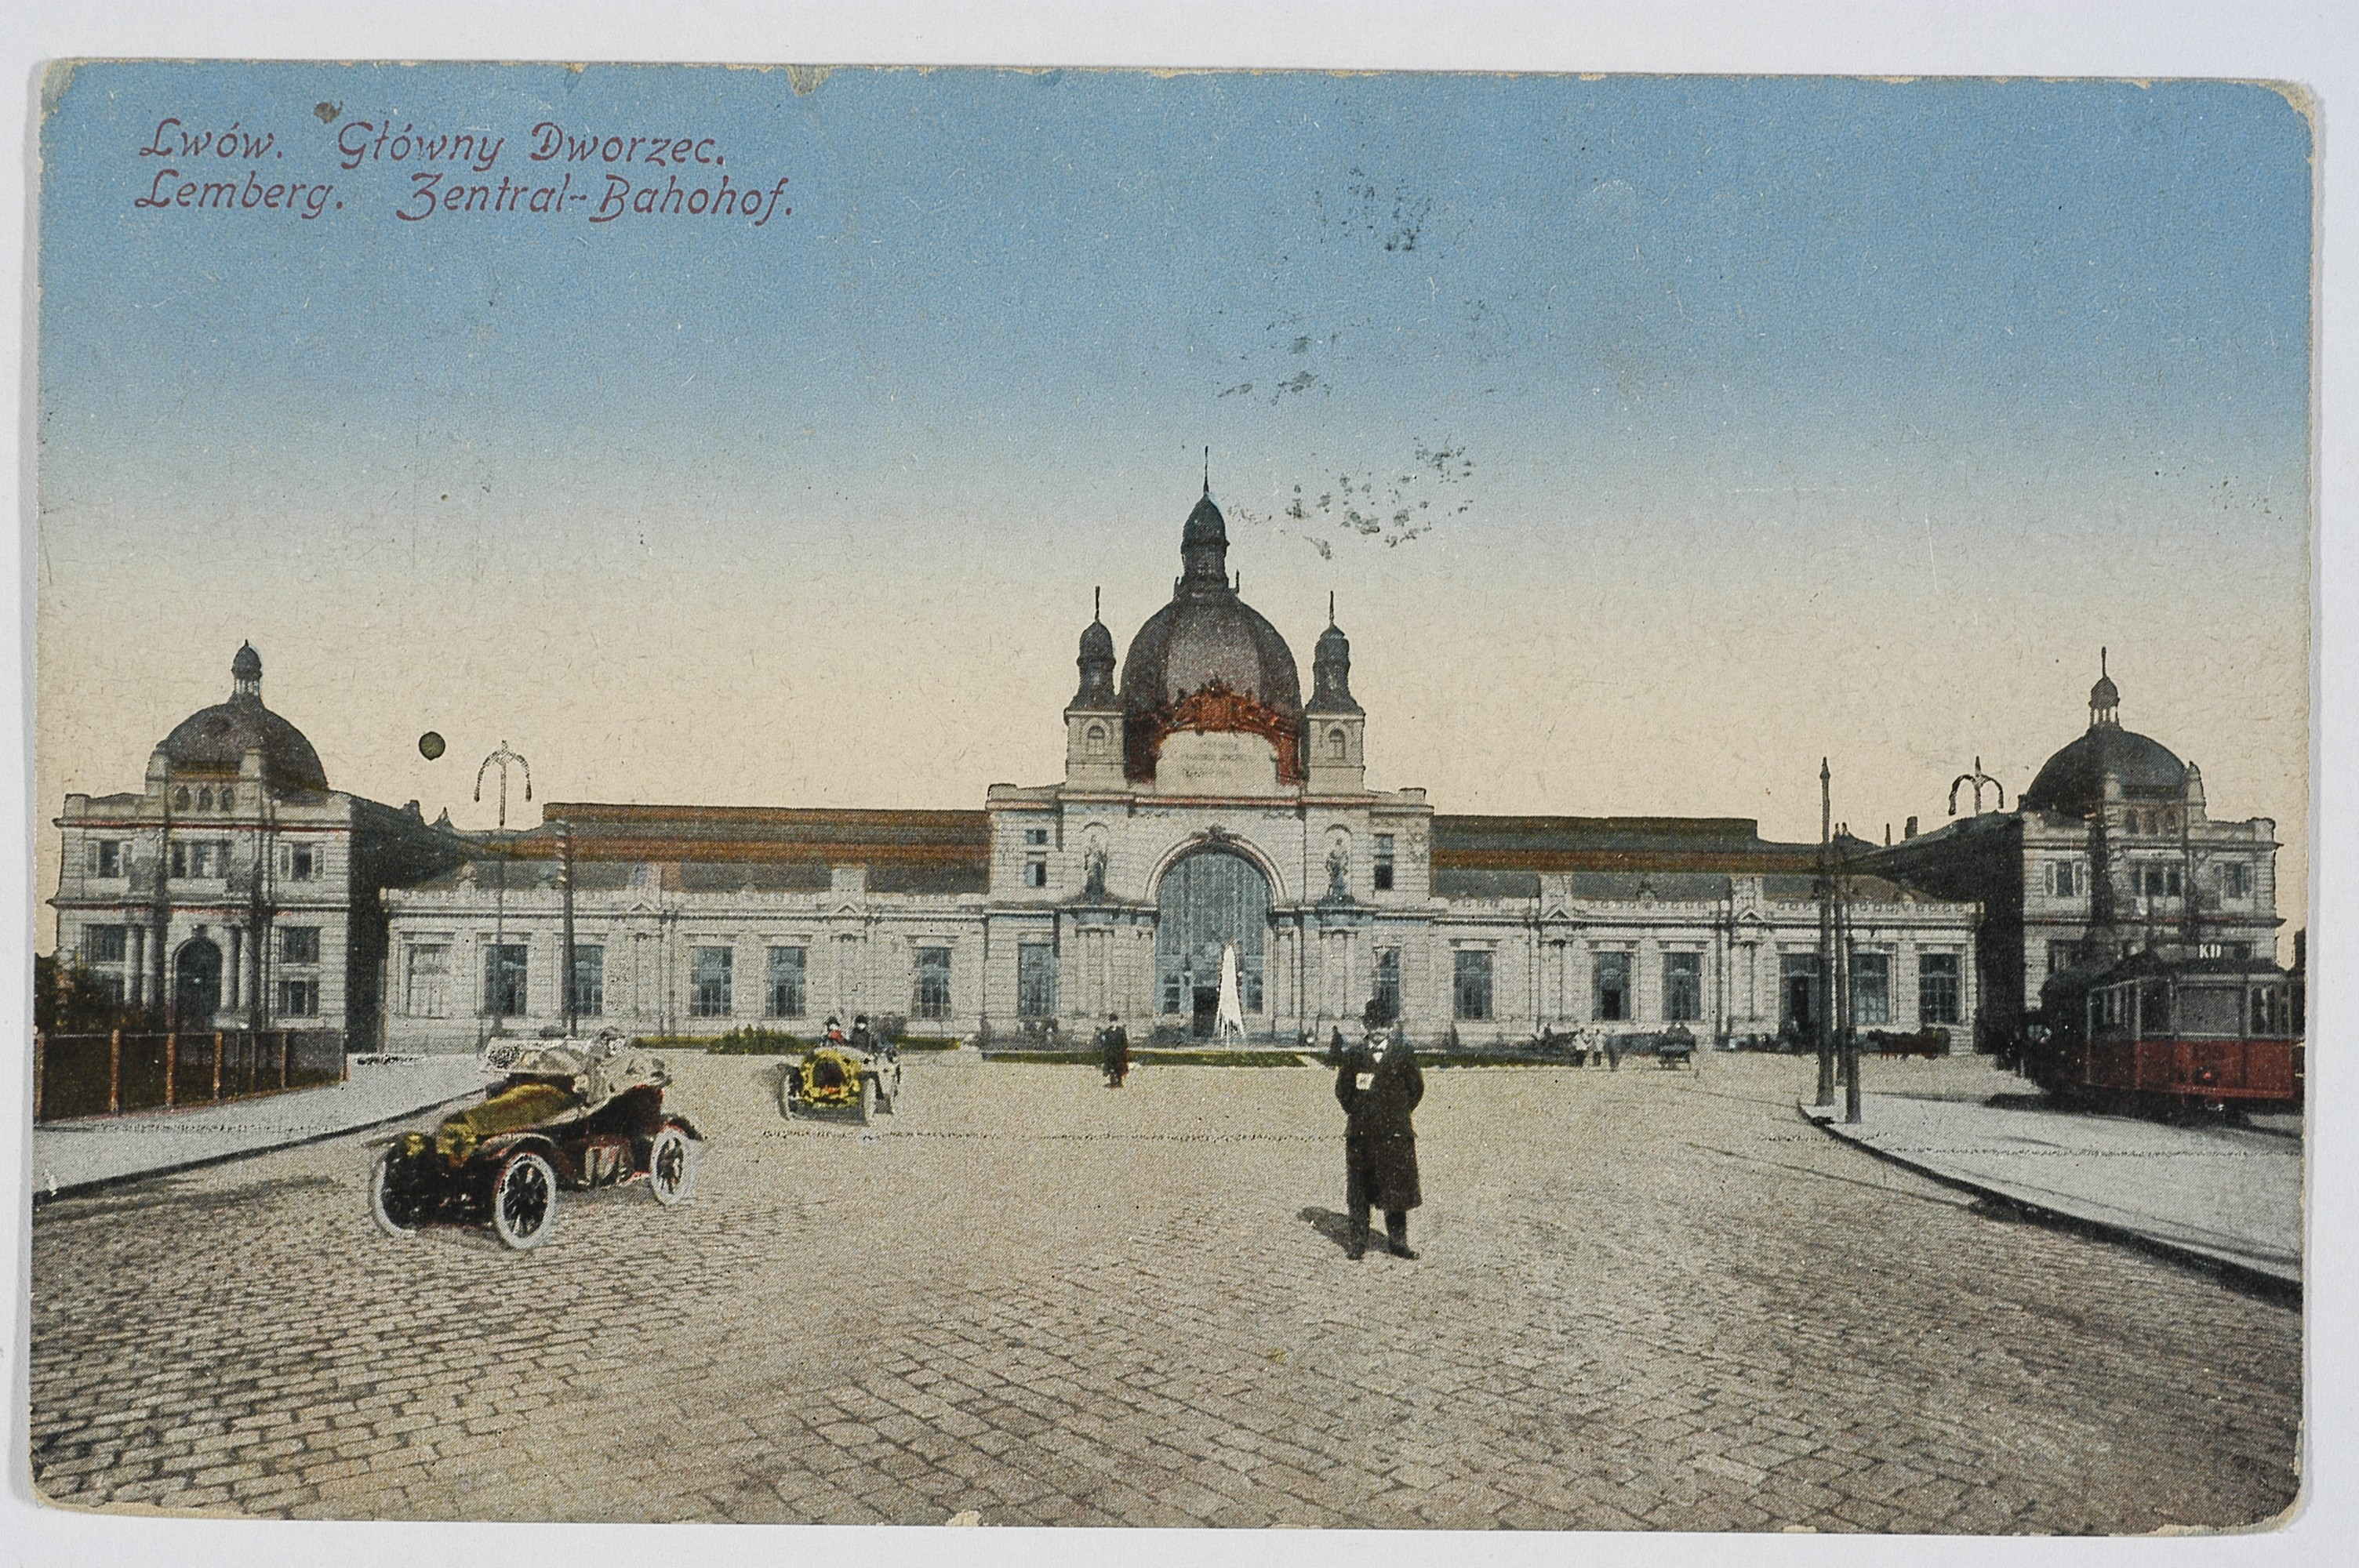 City Hall surrounded by Ukrainian forces. From the collection of Stepan Hayduchok